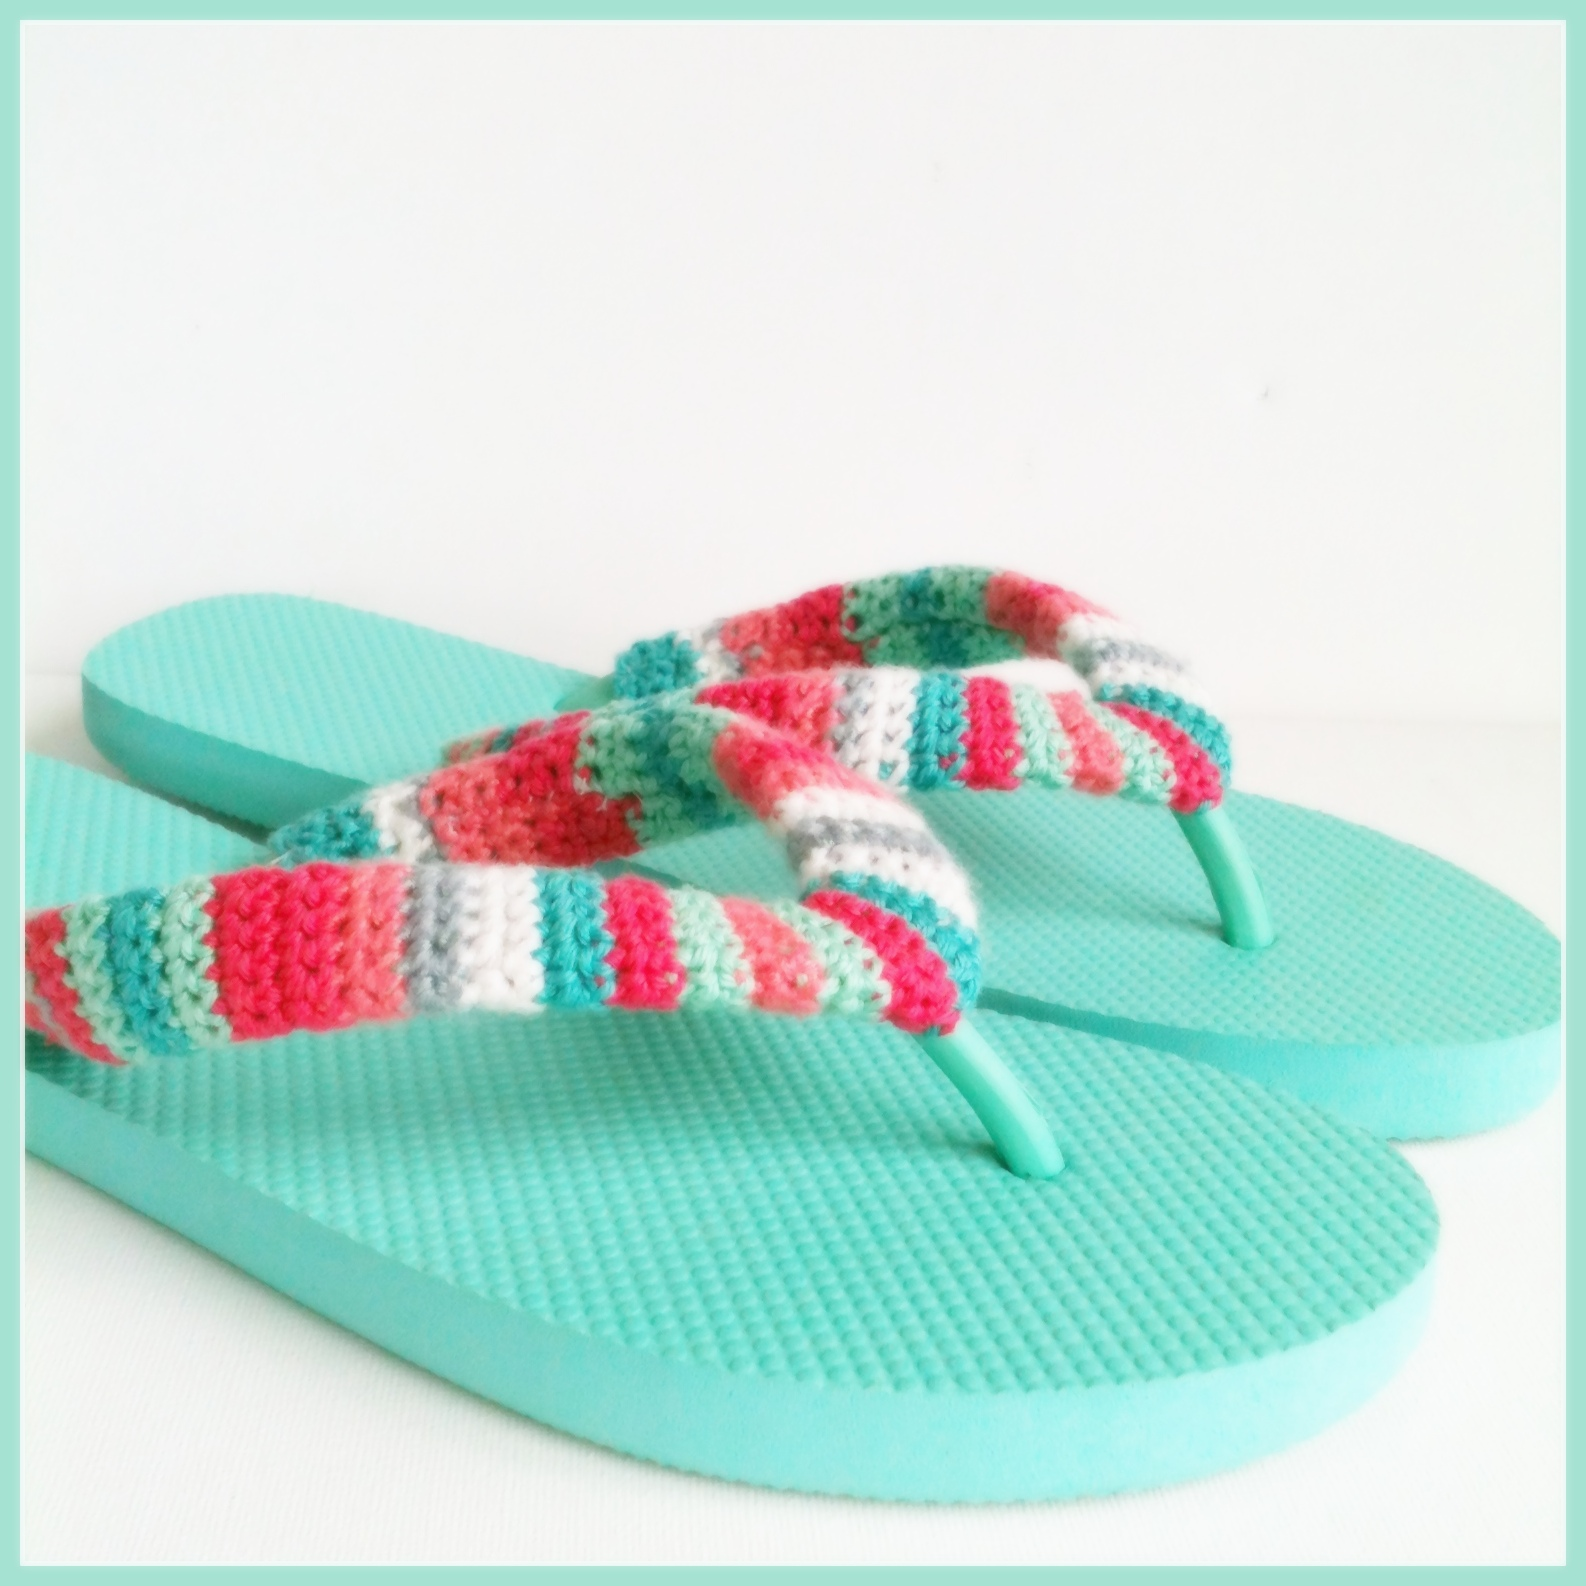 3f95bc9e2 11thongs2. Voila! Now step out in style in your fabulous flip flops.  Advertisements